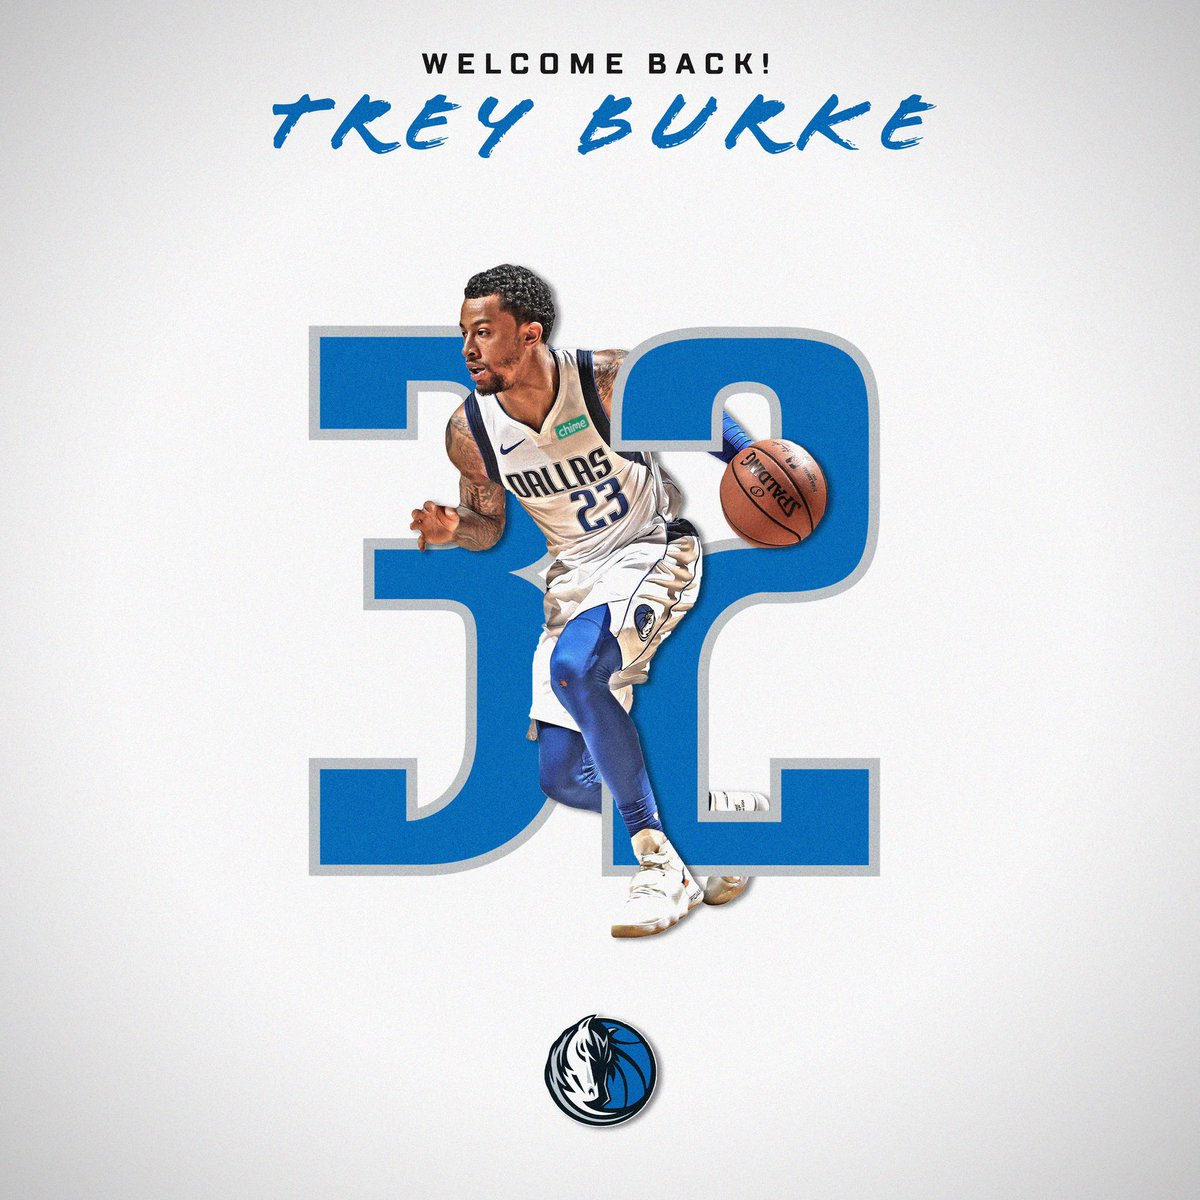 From 23 ➡️ 32. Welcome back, @TreyBurke! #MFFL